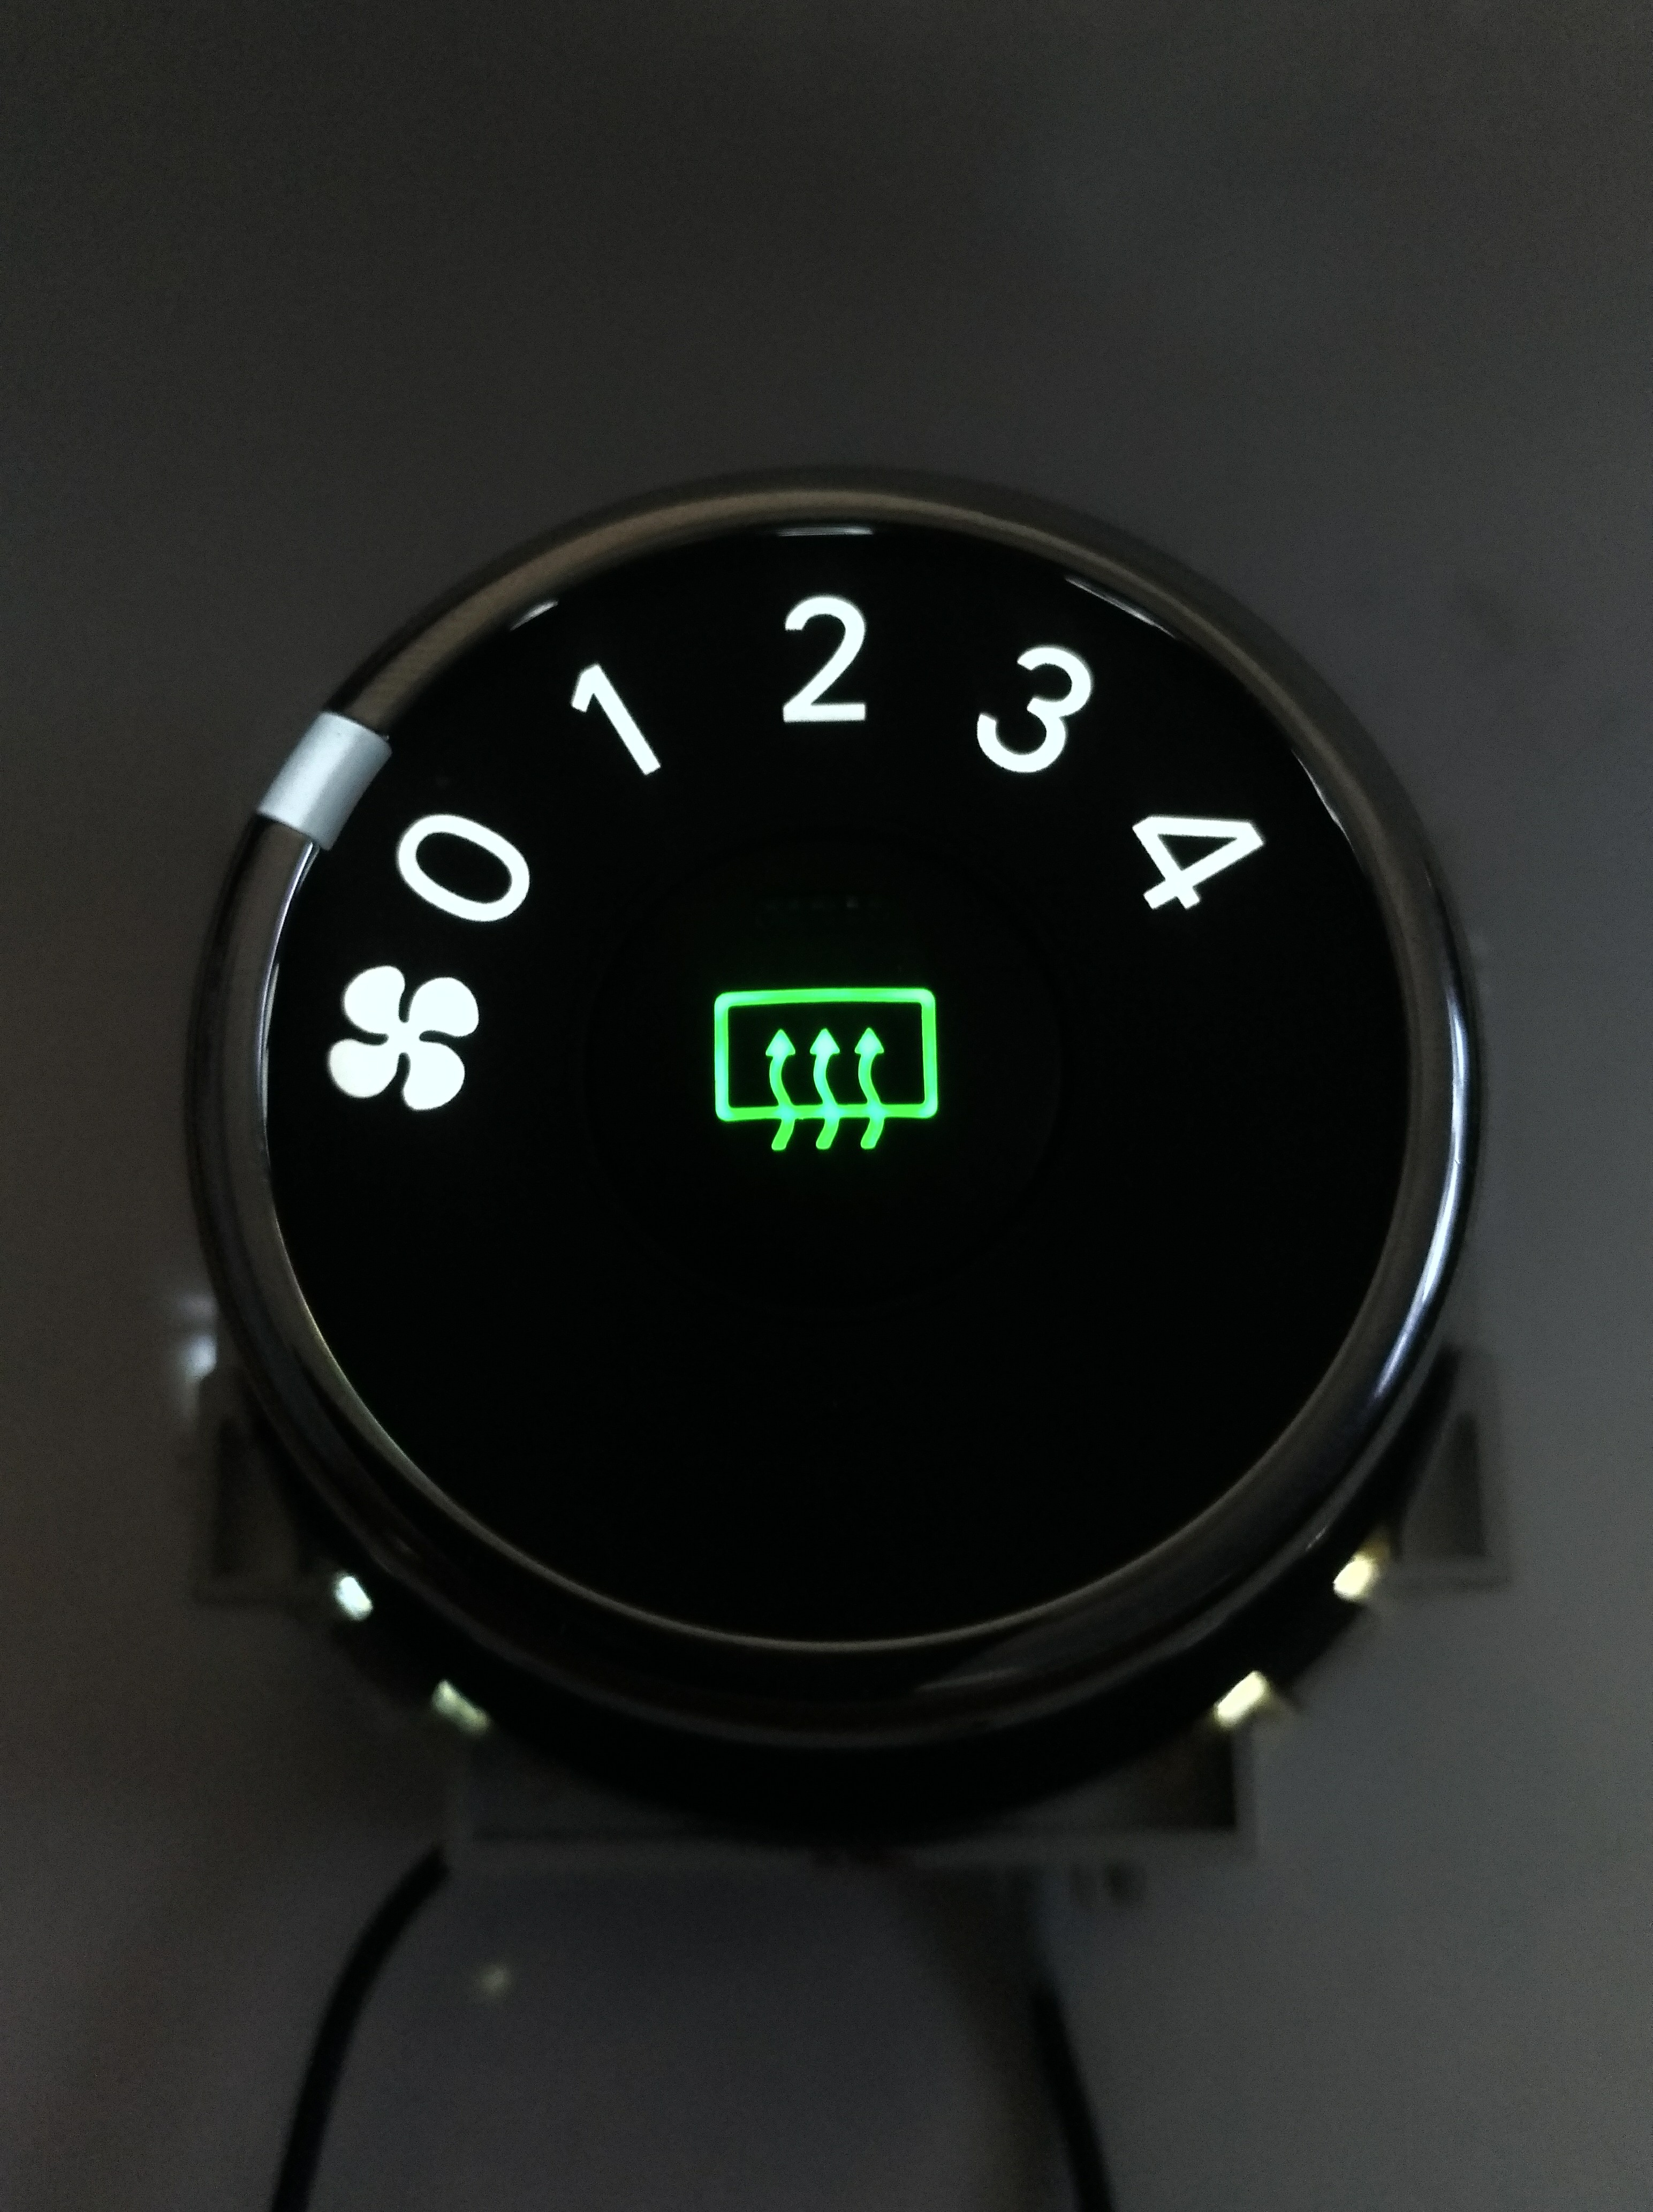 Dual color for Climate Control Knobs-p_20181013_181809_vhdr_auto_1_1539526696728.jpg